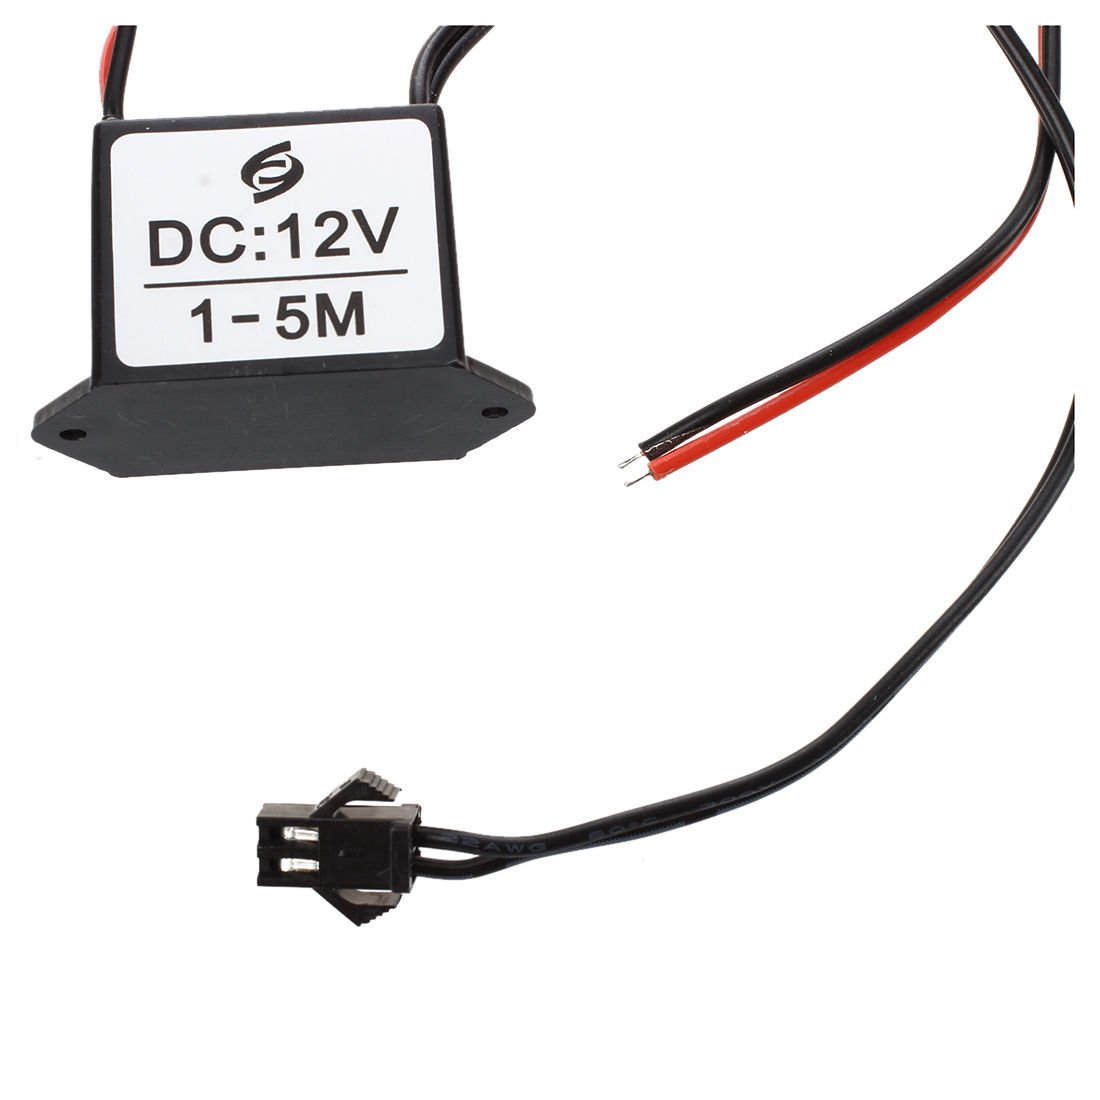 SODIAL(R) red-black cable DC 12V EL wire neon glow strip light driver unit inverter by SODIAL(R) (Image #4)